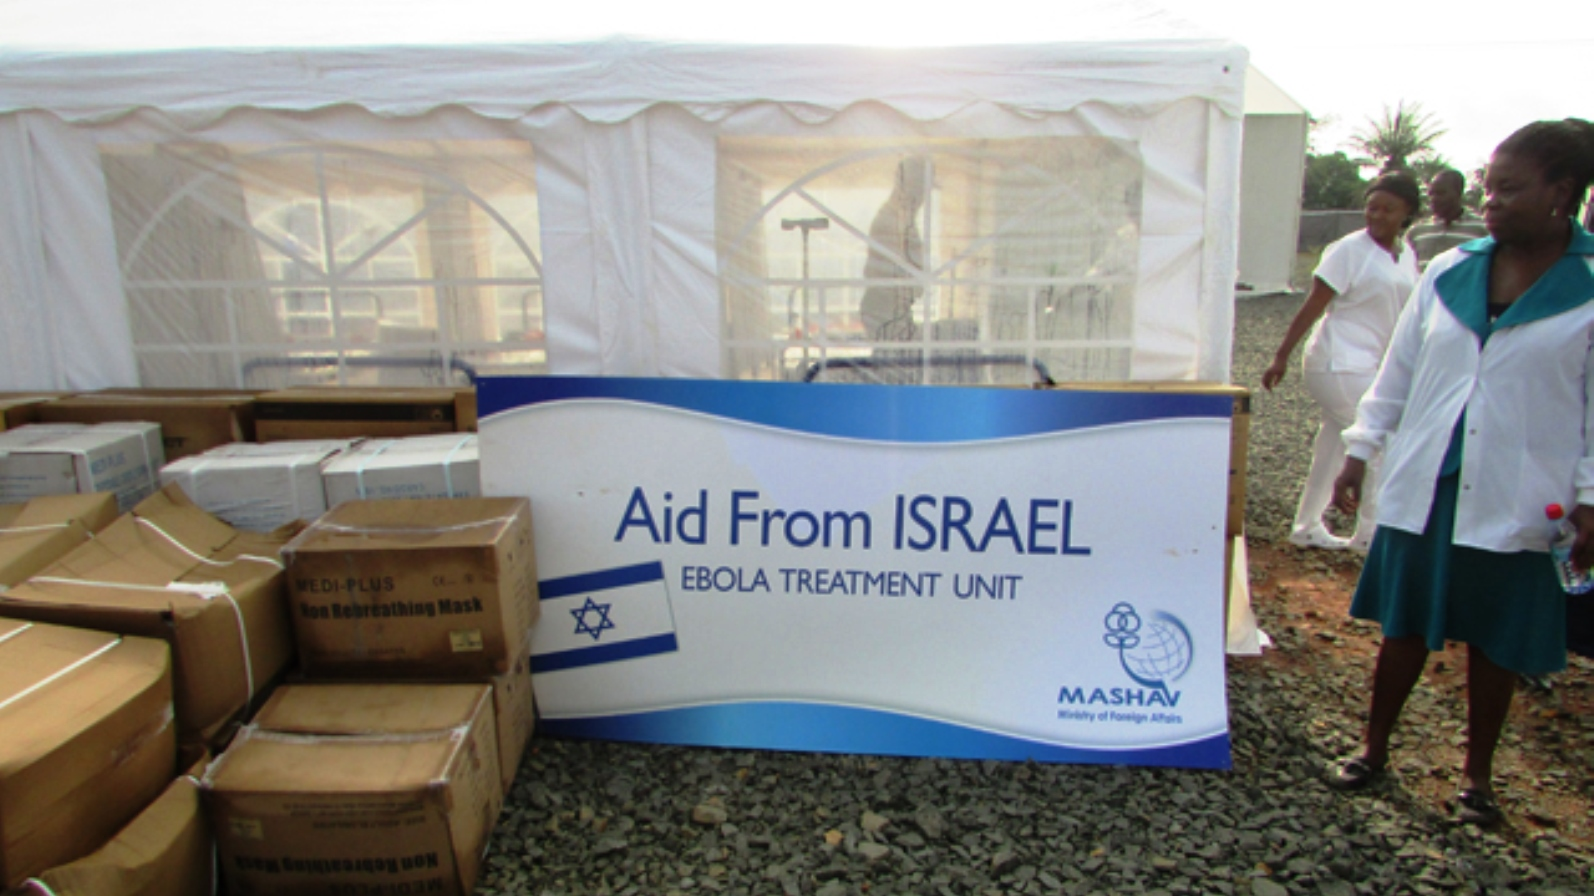 Israel shipped essential supplies to Africa in response to the Ebola outbreak in 2014. Photo courtesy of MASHAV